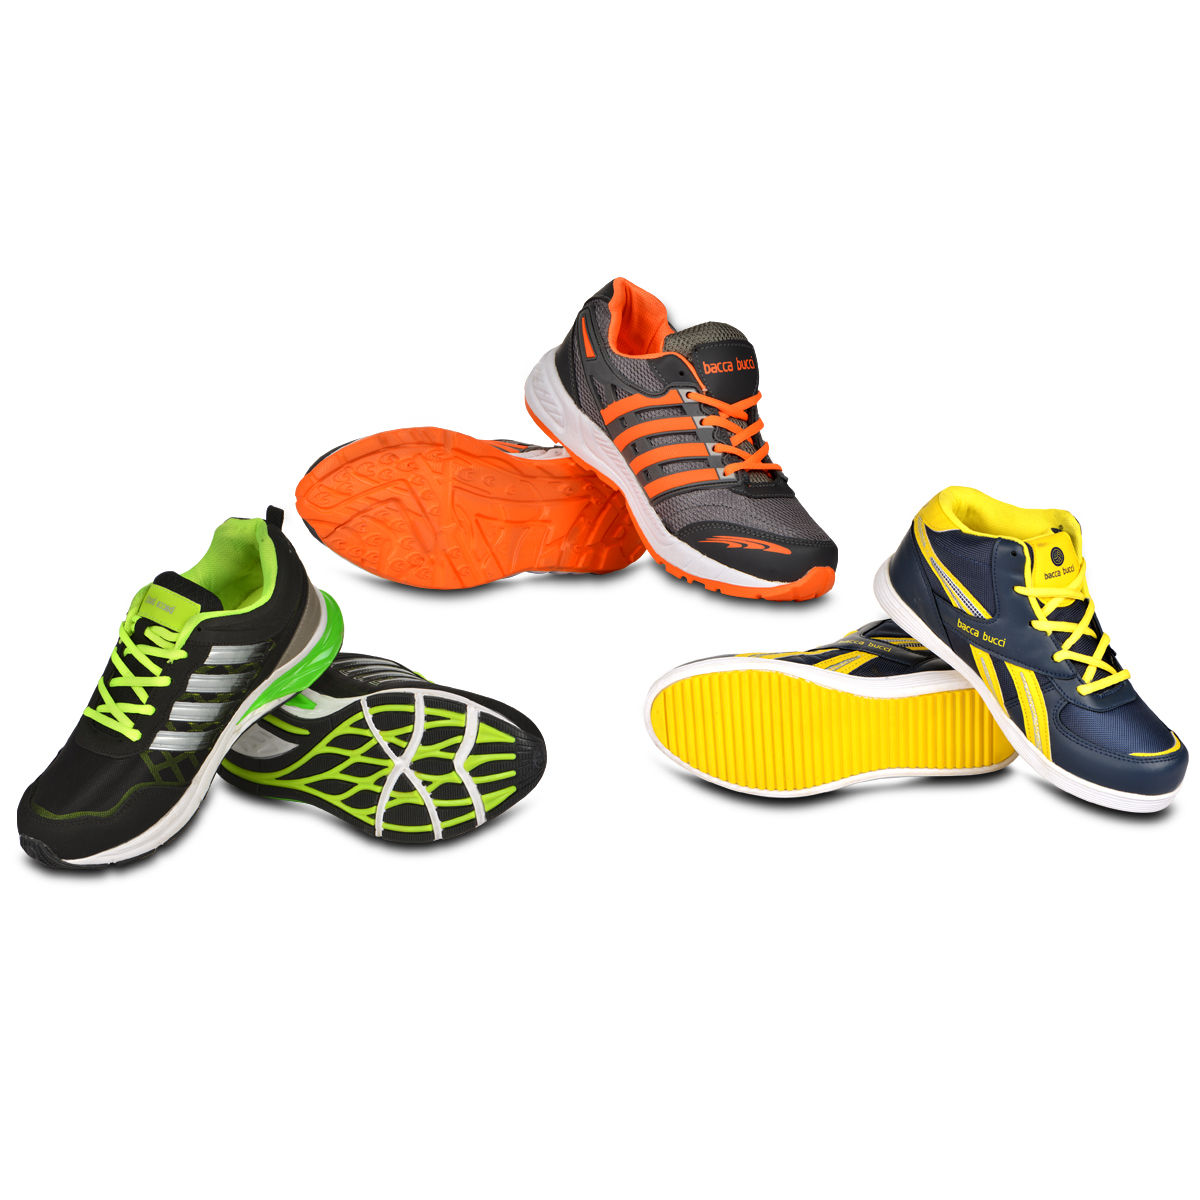 Buy Bacca Bucci Set of 3 Sports Shoes